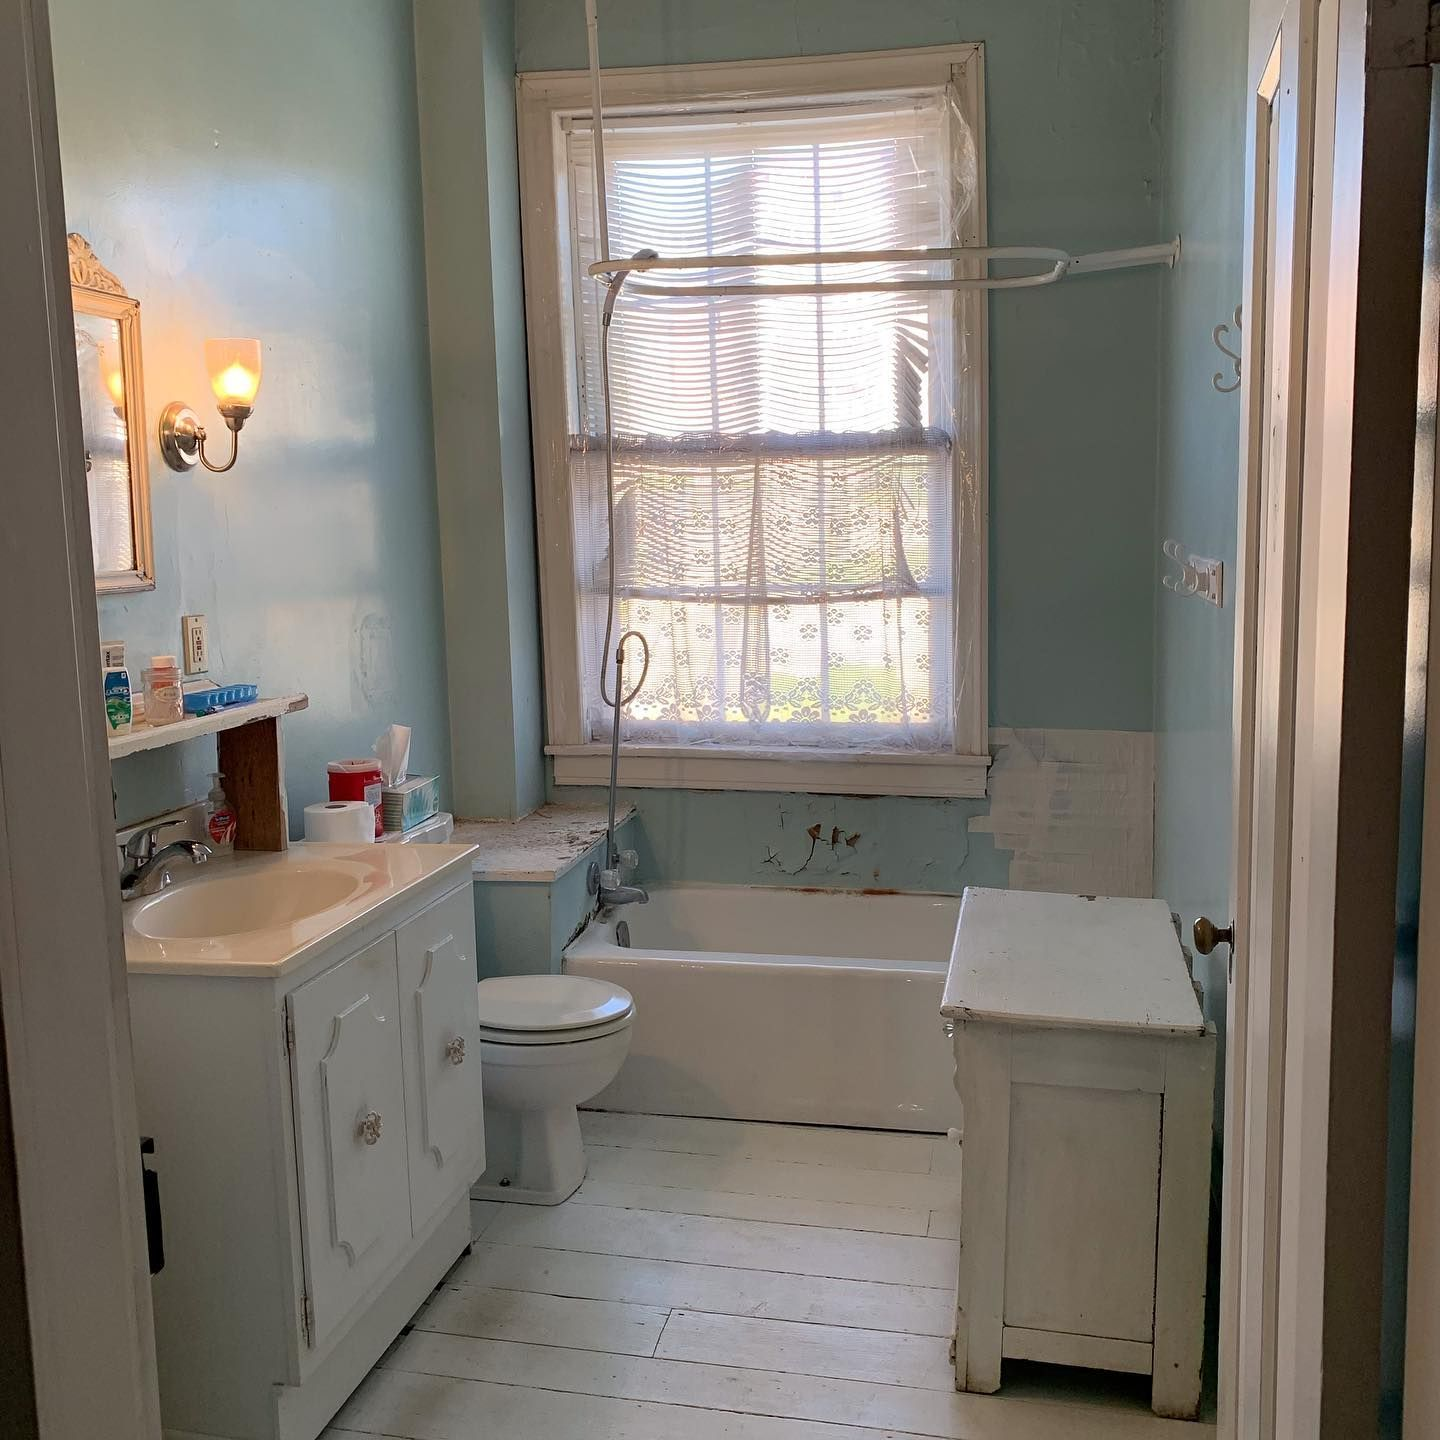 Day 1 Of Our Bathroom Remodel Of Our Historic C 1841 Home In Burlington Iowa 1 Before Pic 2 Tub And Vanity Removed 3 Some Of The Brick Wall Exposed T In 2020